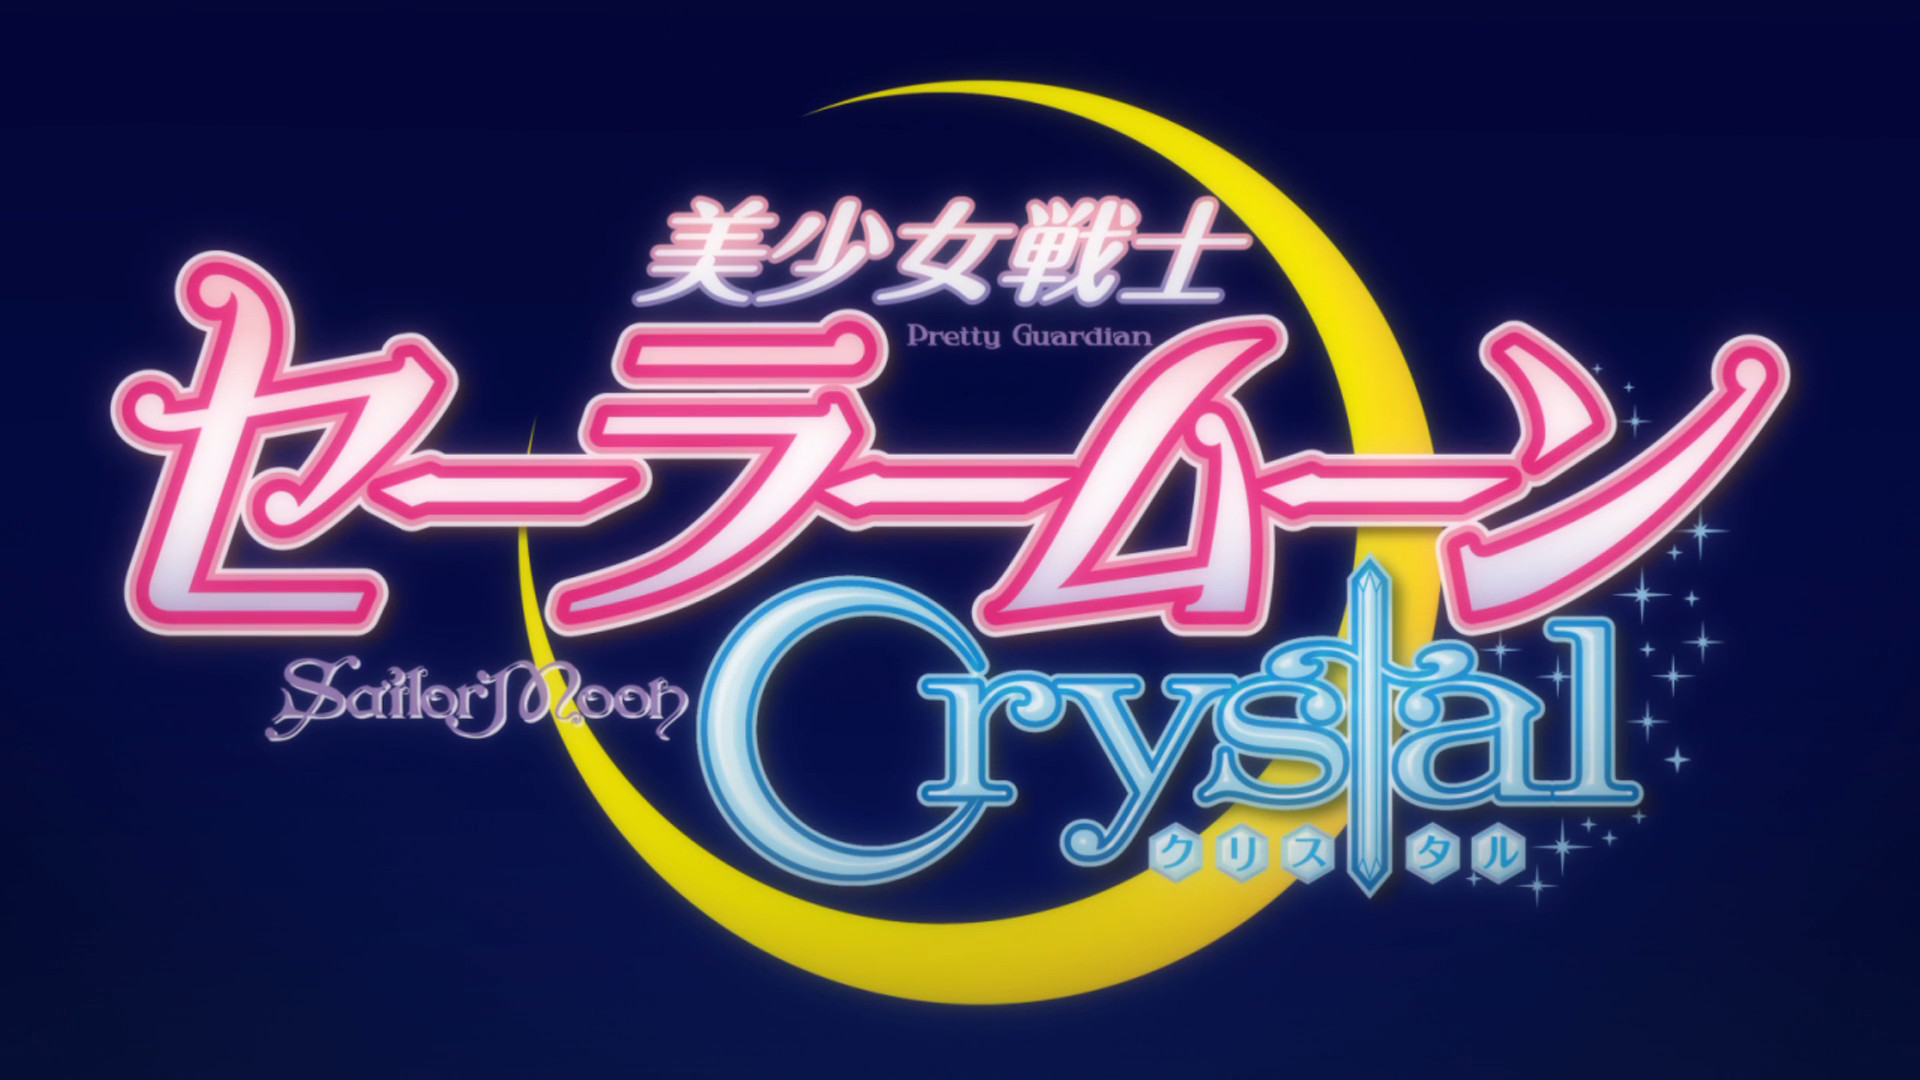 Sailor Moon Crystal Ep. 1 & 2 — Let's Get Hyped   oprainfall